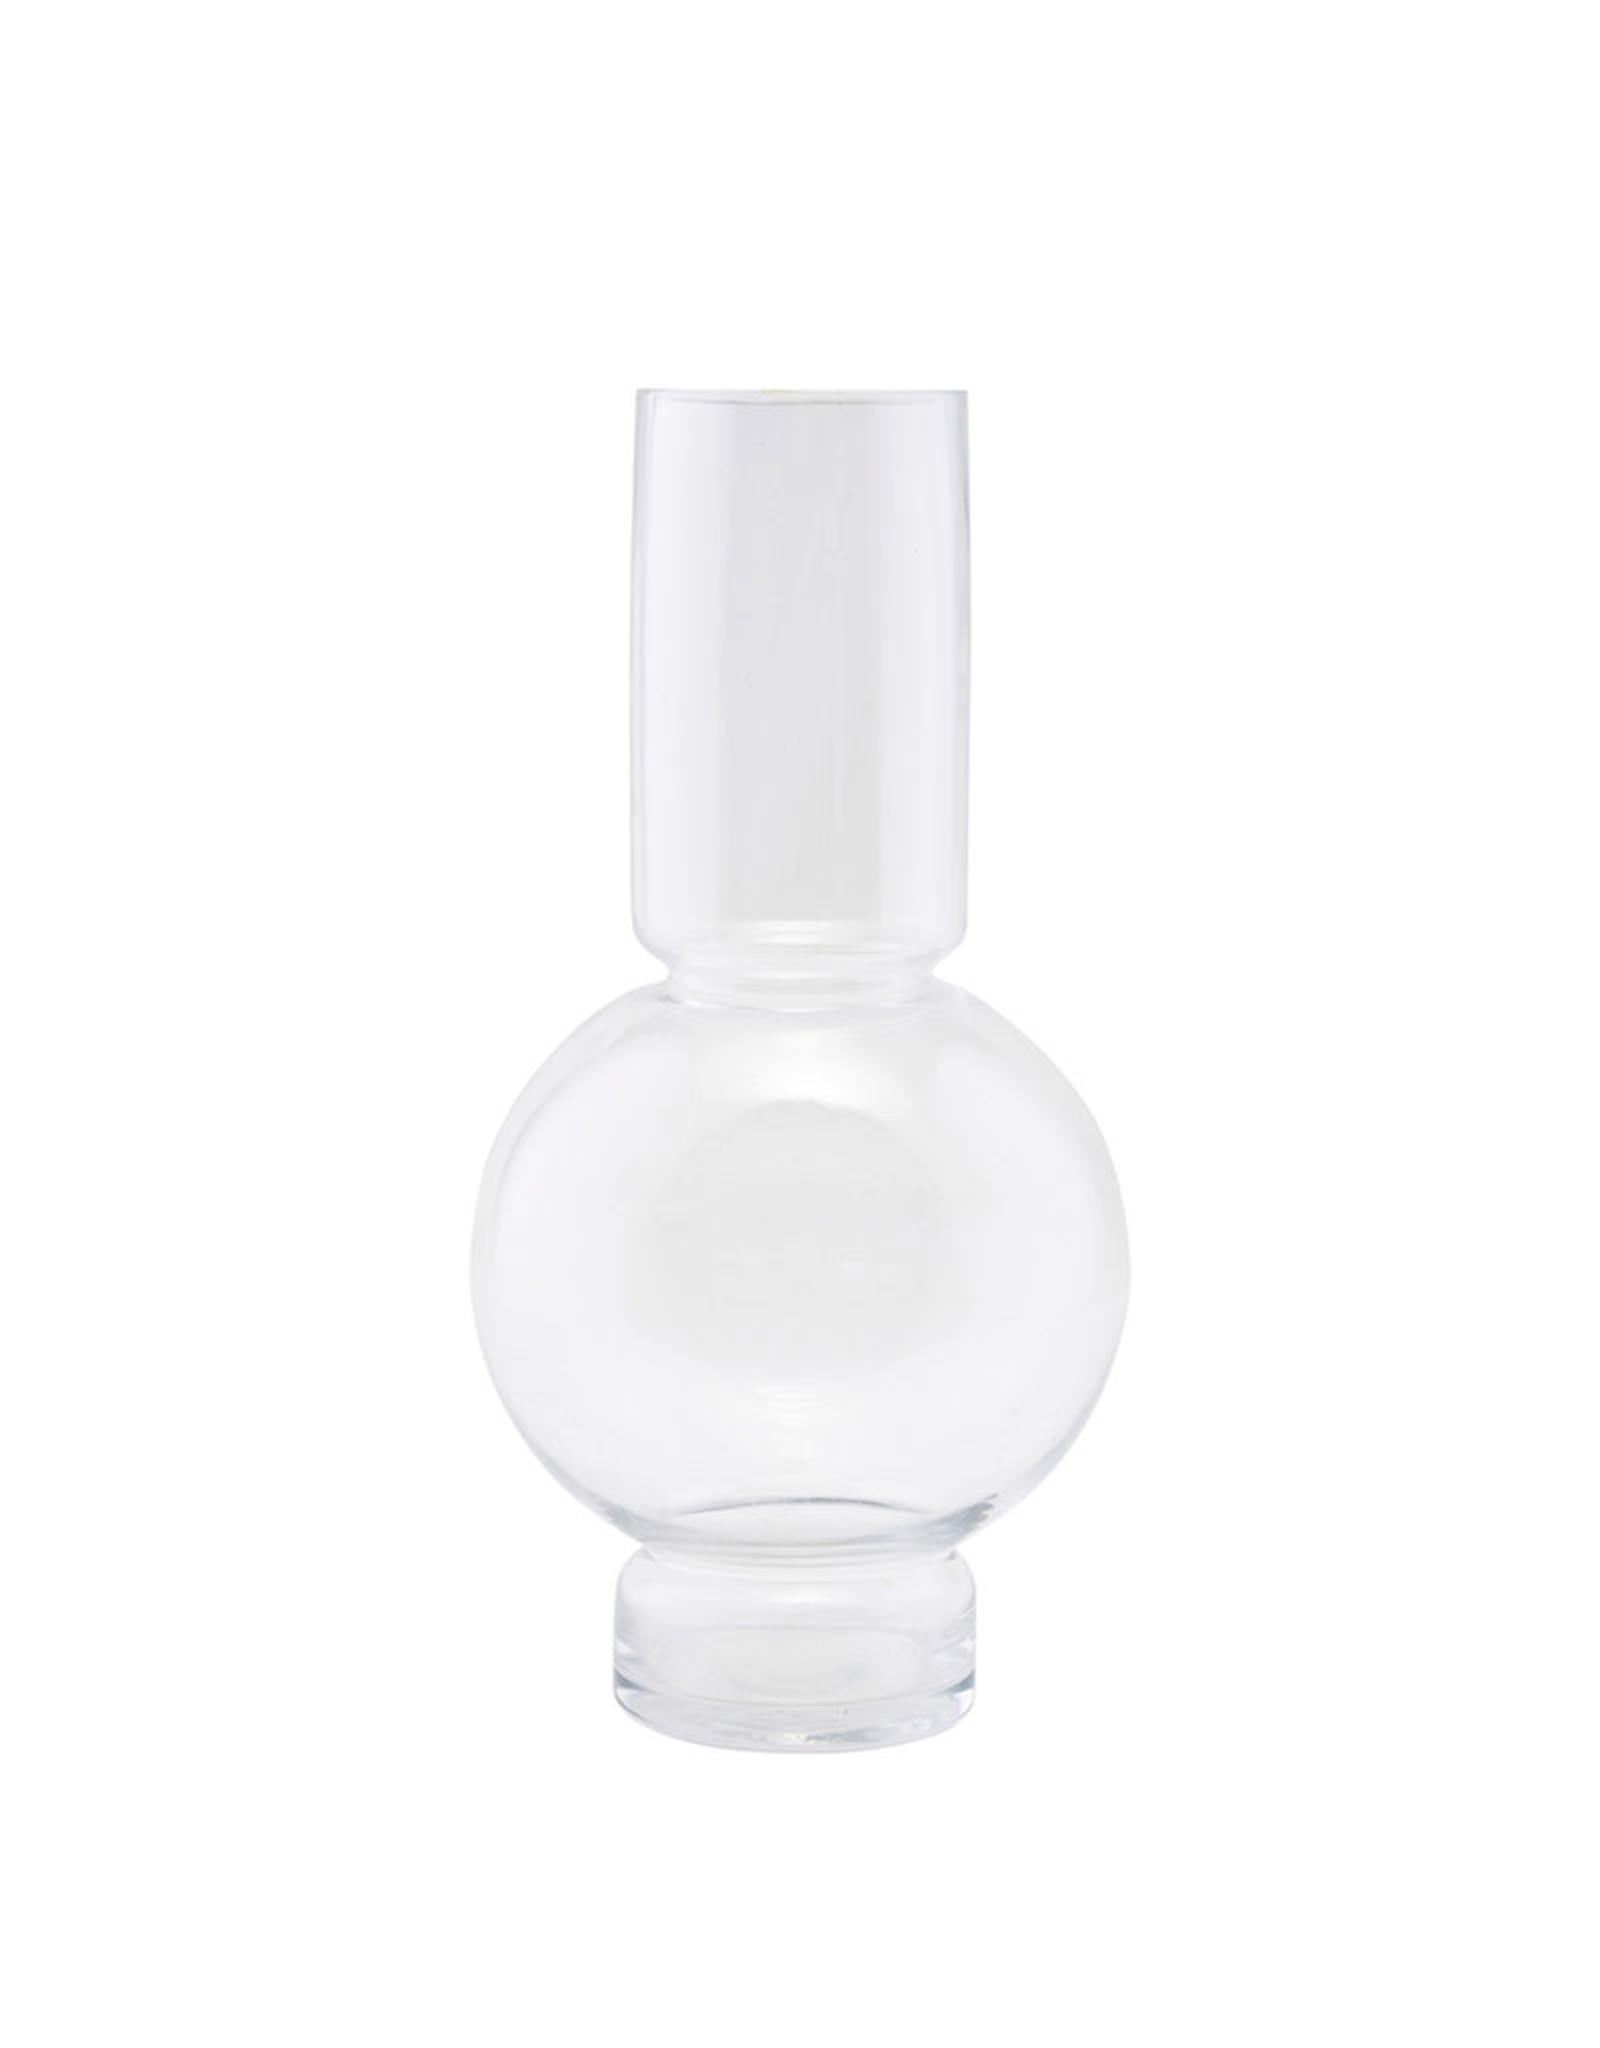 HOUSE DOCTOR HOUSE DOCTOR VASE BUBBLE CLEAR L